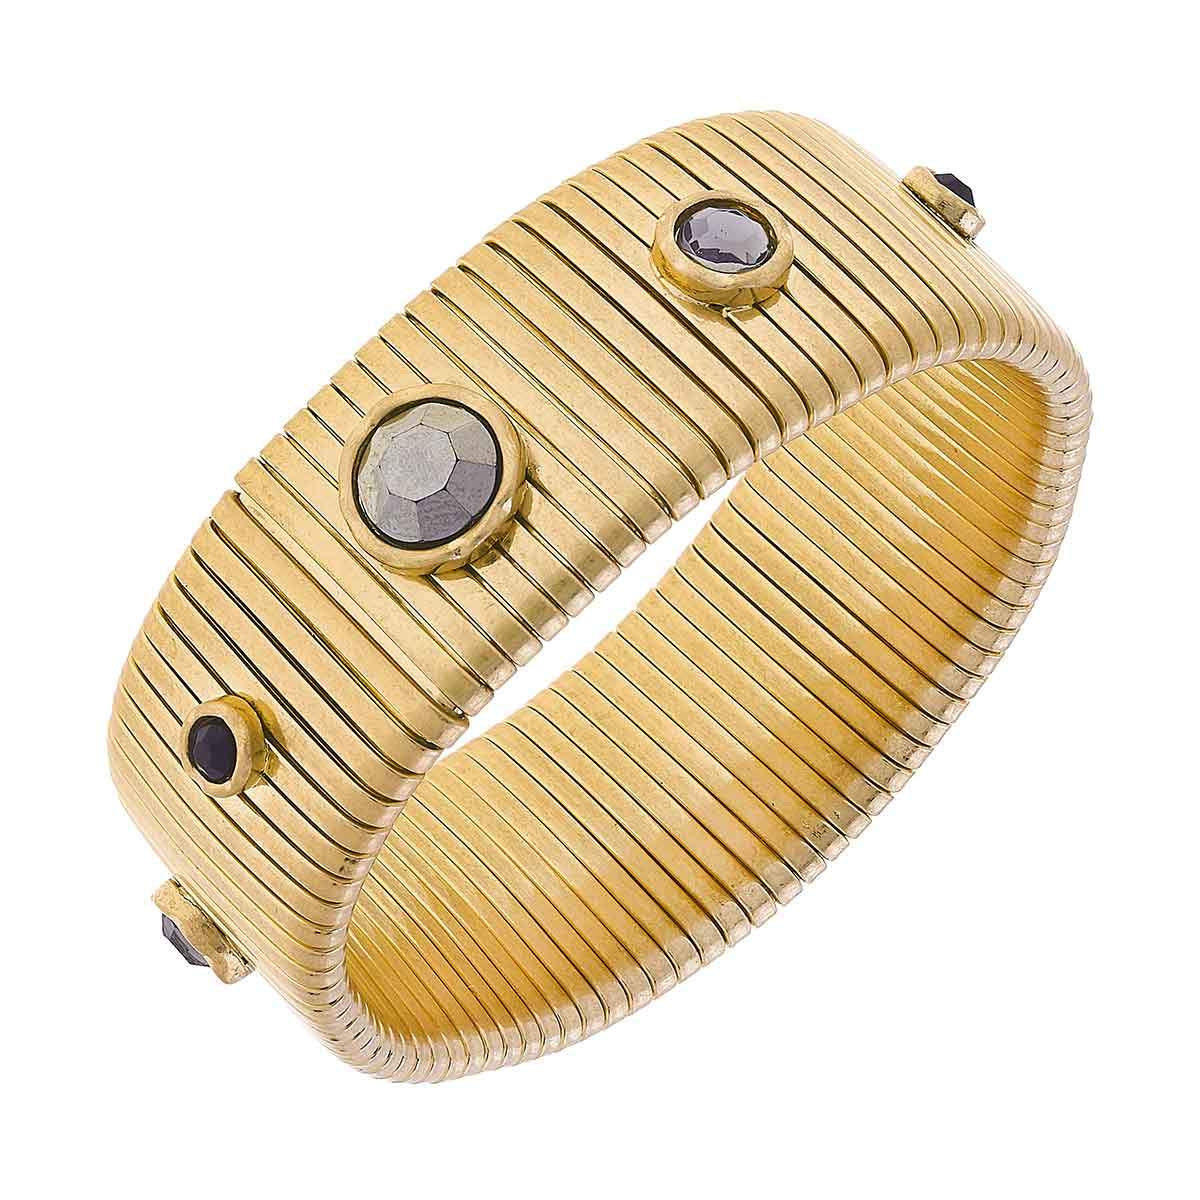 Statement Watch Band Bangle